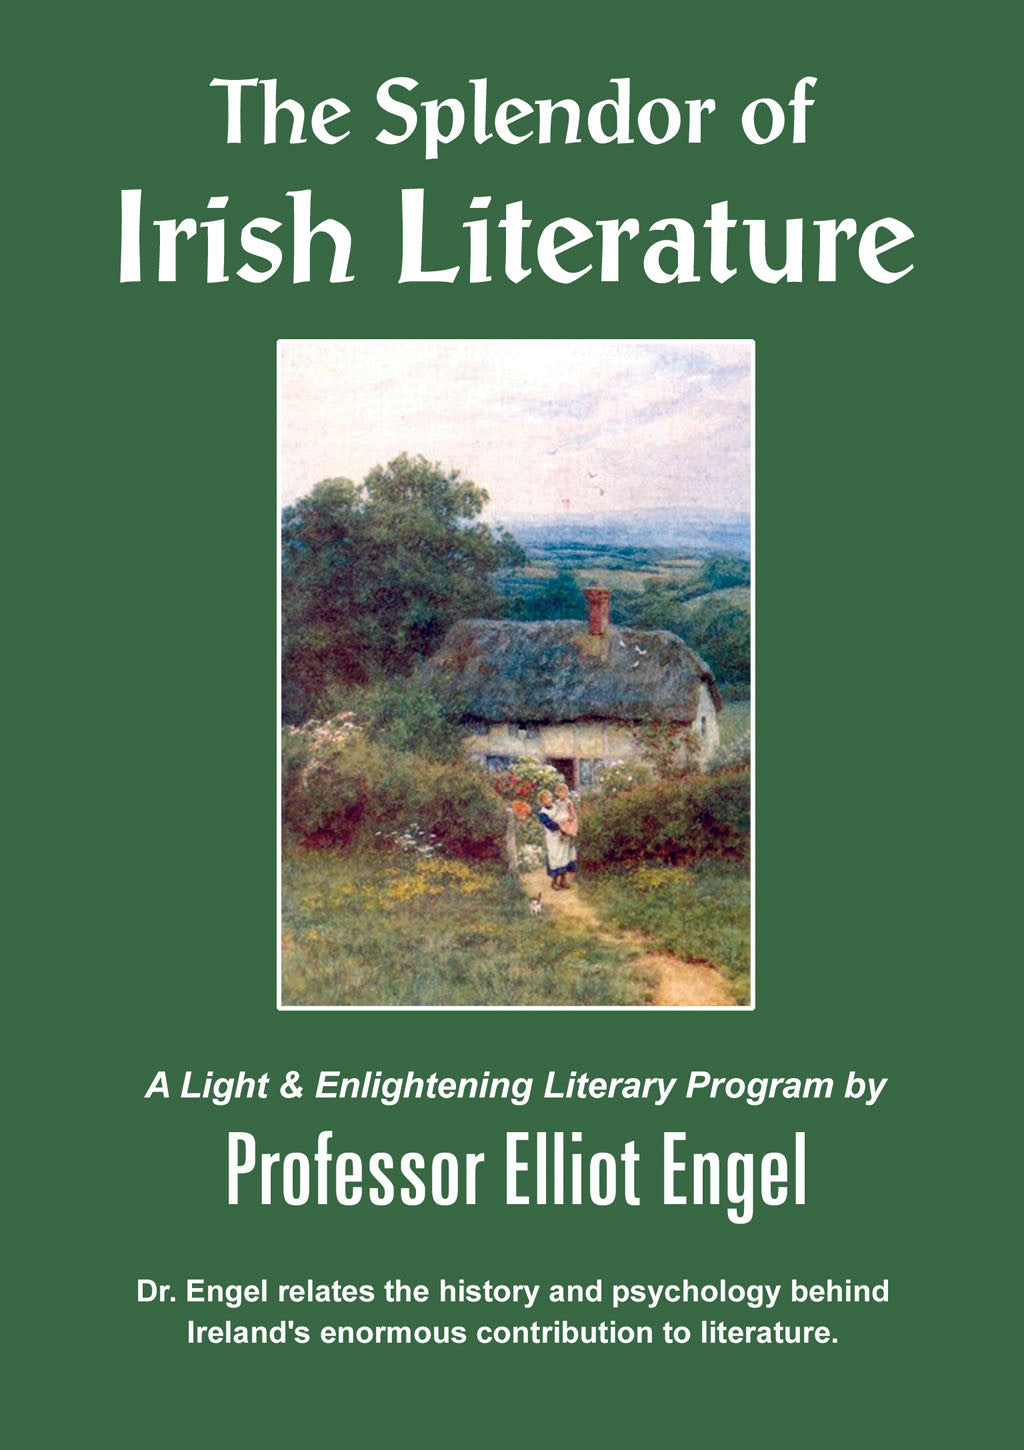 The Splendor of Irish Literature